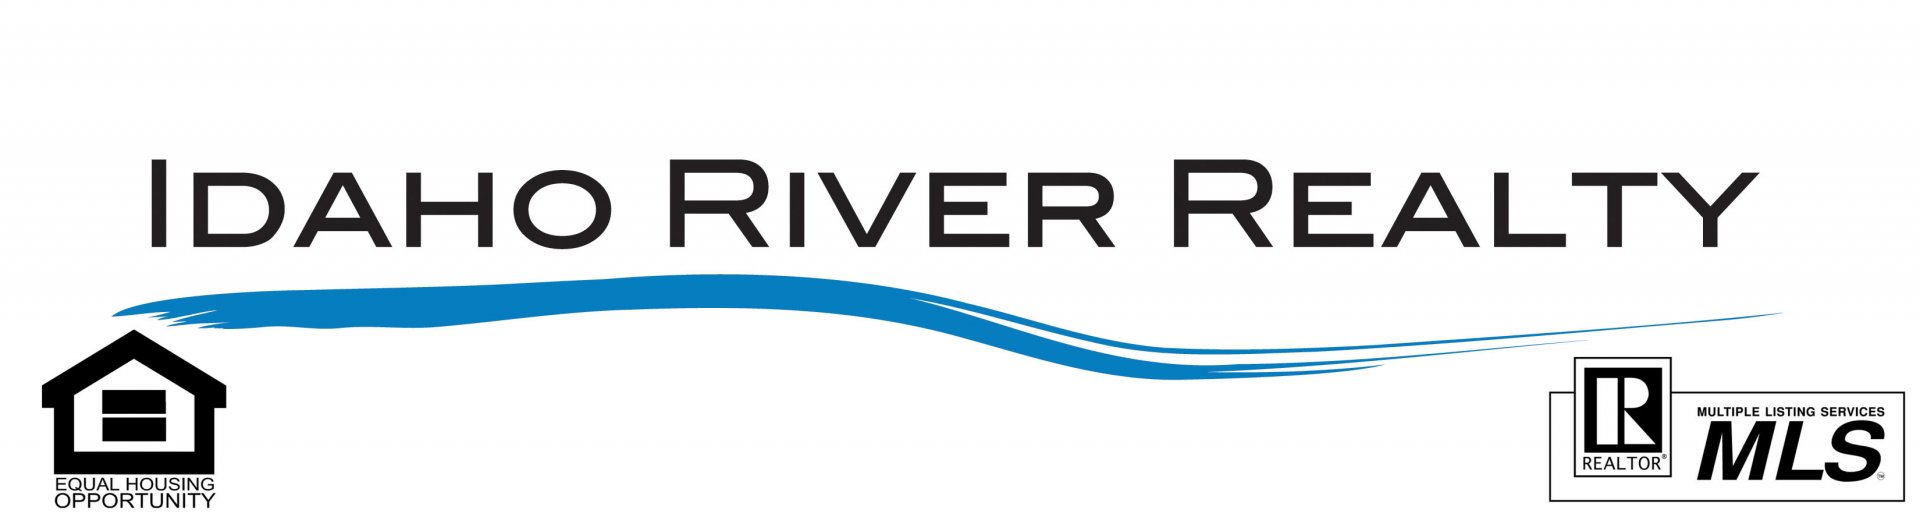 Idaho River Realty logo